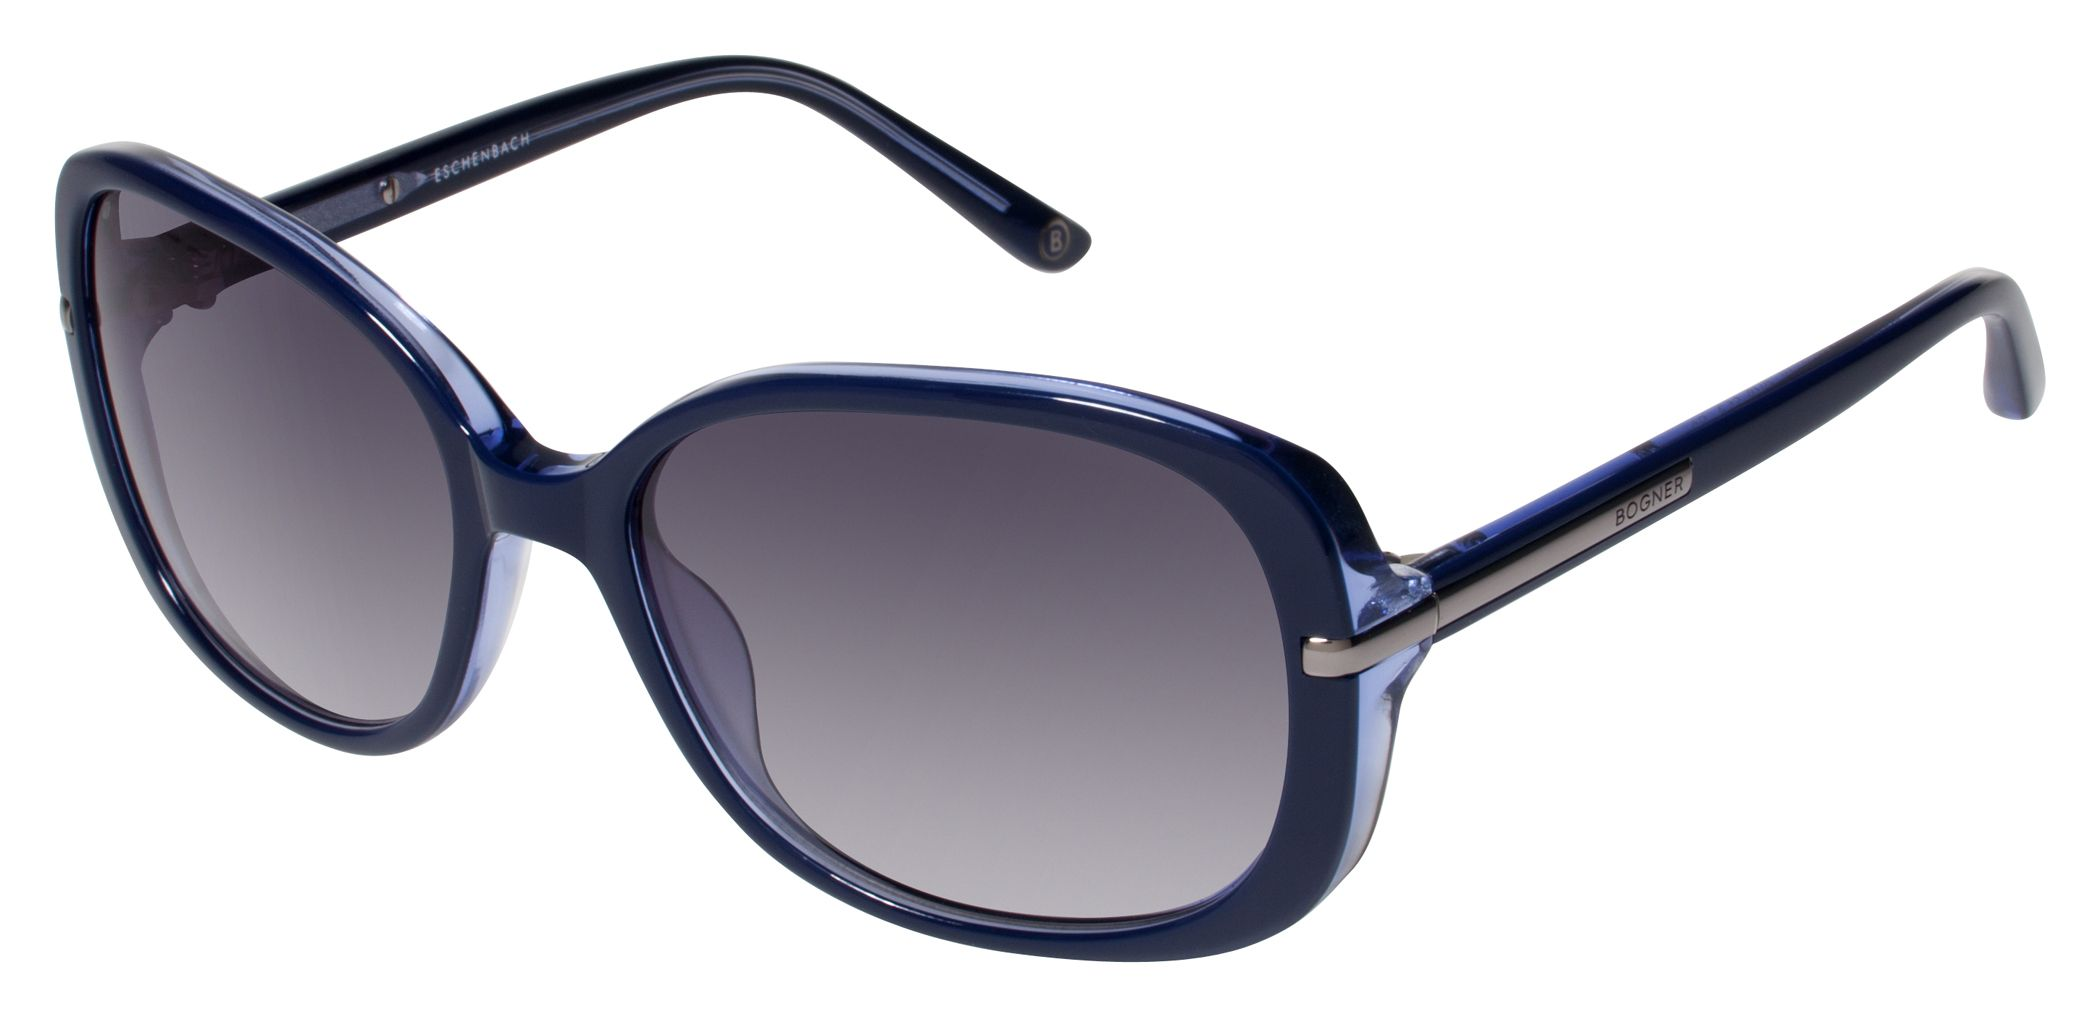 Bogner's 736052 is a wearable soft square made for the modern active lady. Here in Blue, also available in Brown/Olive. Tura.com